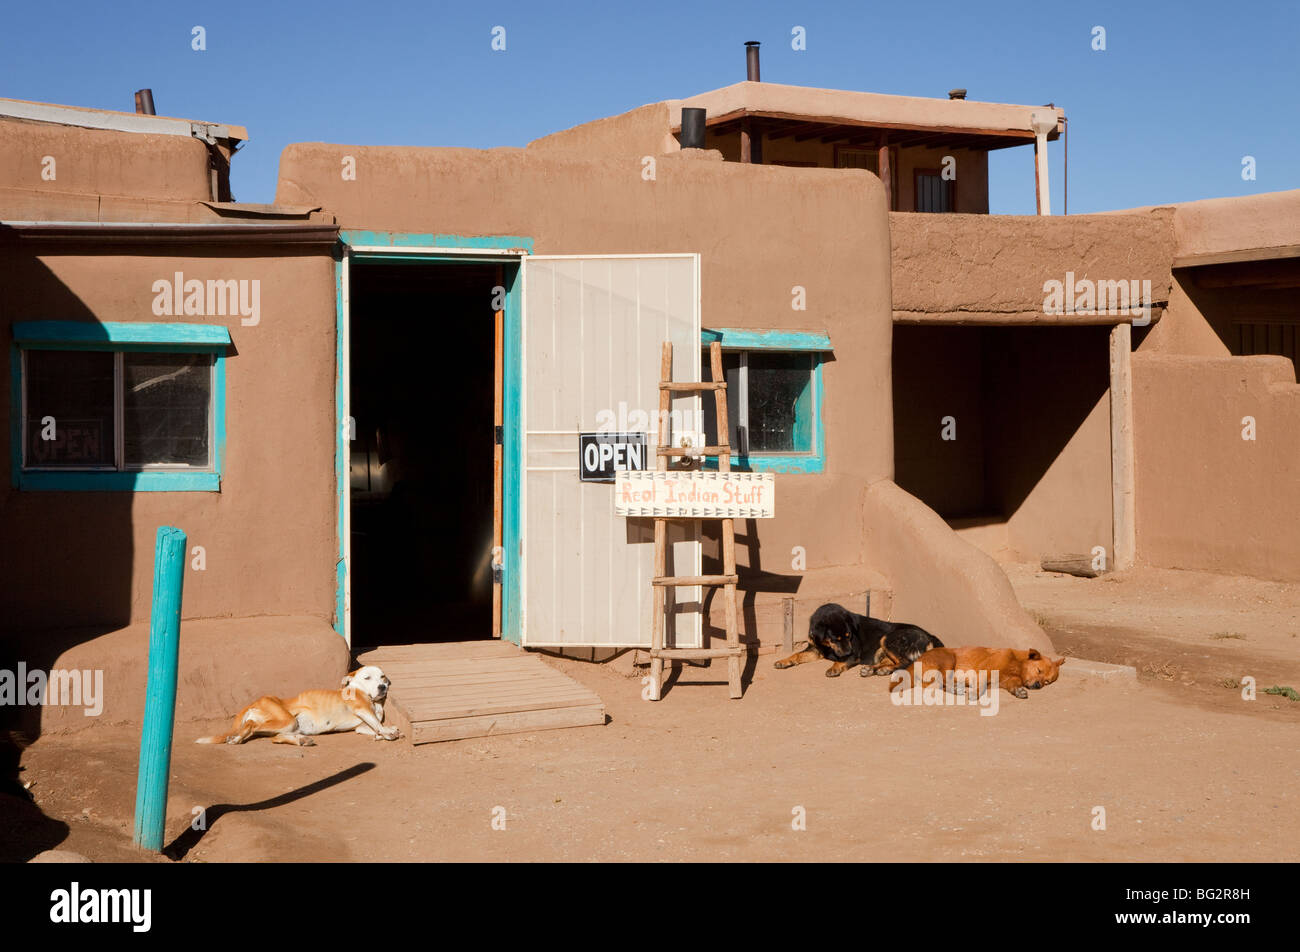 Sleeping dogs lying outside an Indian shop in Taos Pueblo in New Mexico Stock Photo